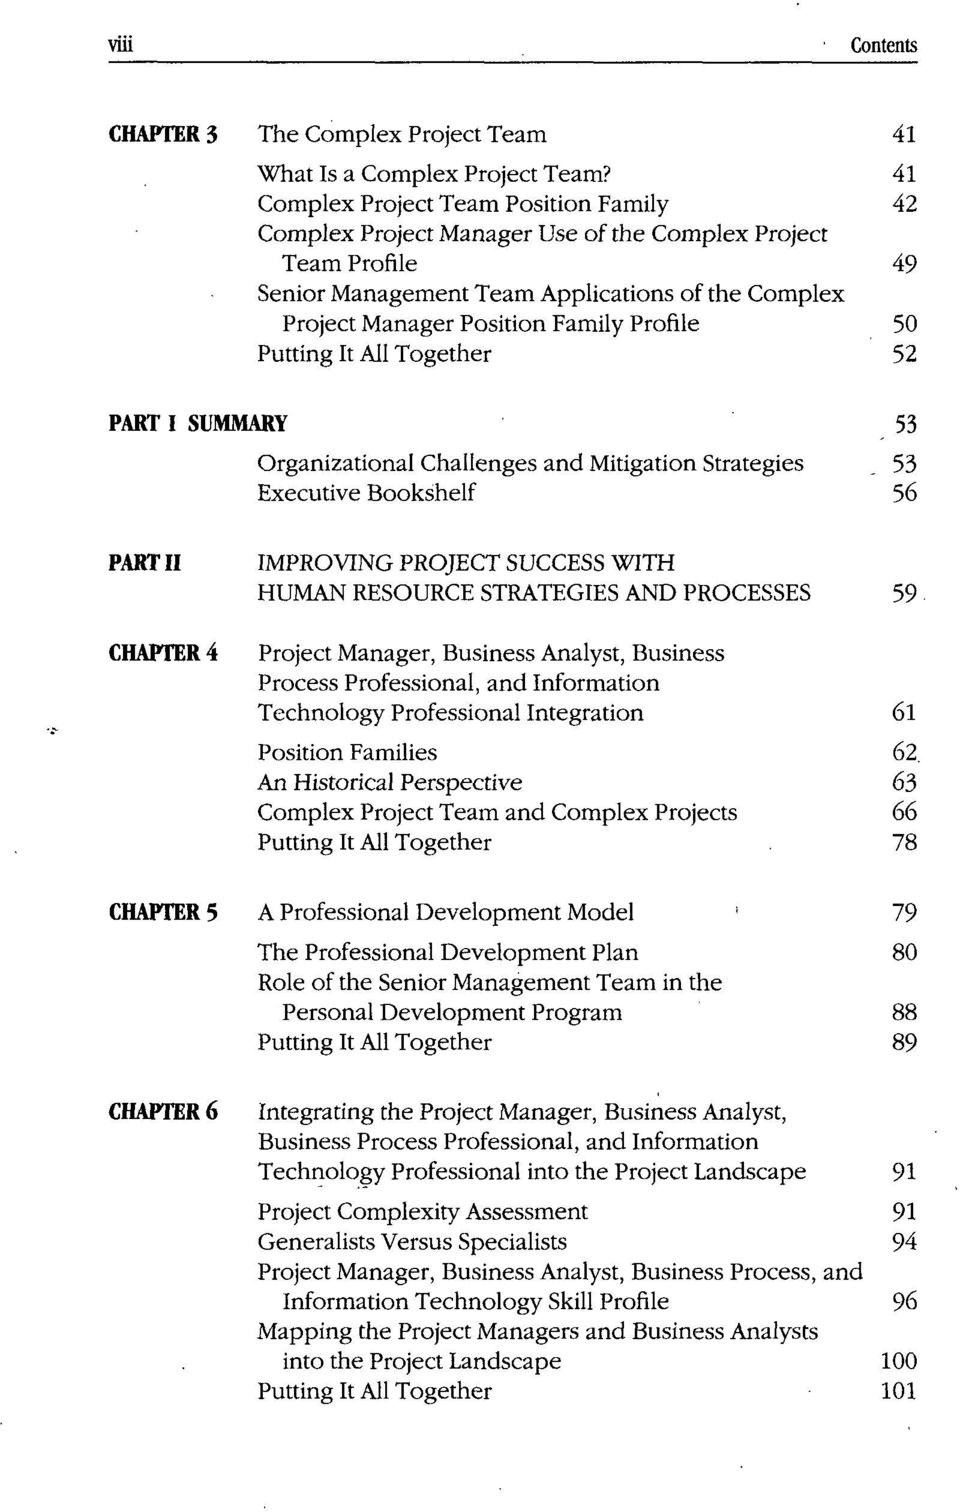 Profile 50 52 PART I SUMMARY 5 5 56 PART II CHAPTER 4 IMPROVING PROJECT SUCCESS WITH HUMAN RESOURCE STRATEGIES AND PROCESSES 59 Project Manager, Business Analyst, Business Process Professional, and